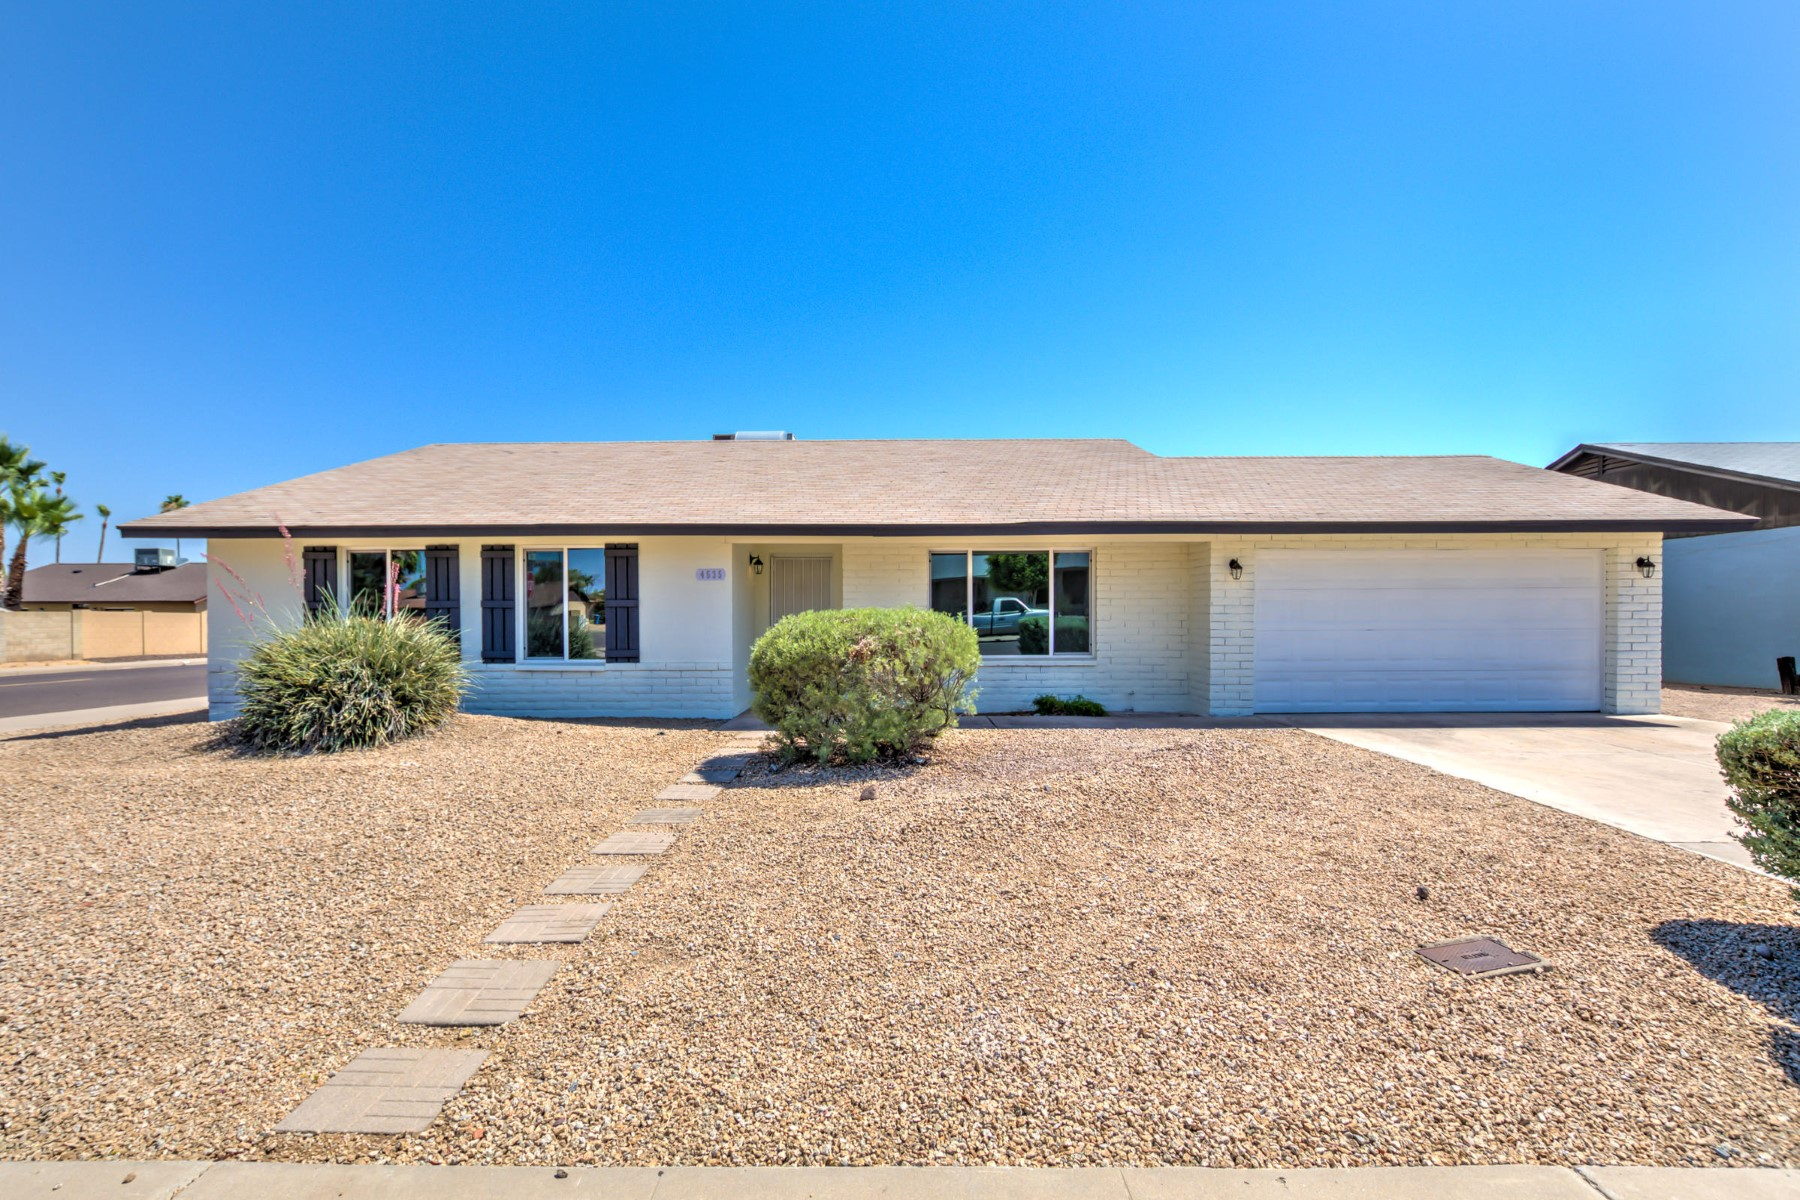 Single Family Home for Sale at Fantastic remodel in the best location in Phoenix 4535 E Joan De Arc Ave Phoenix, Arizona, 85032 United States